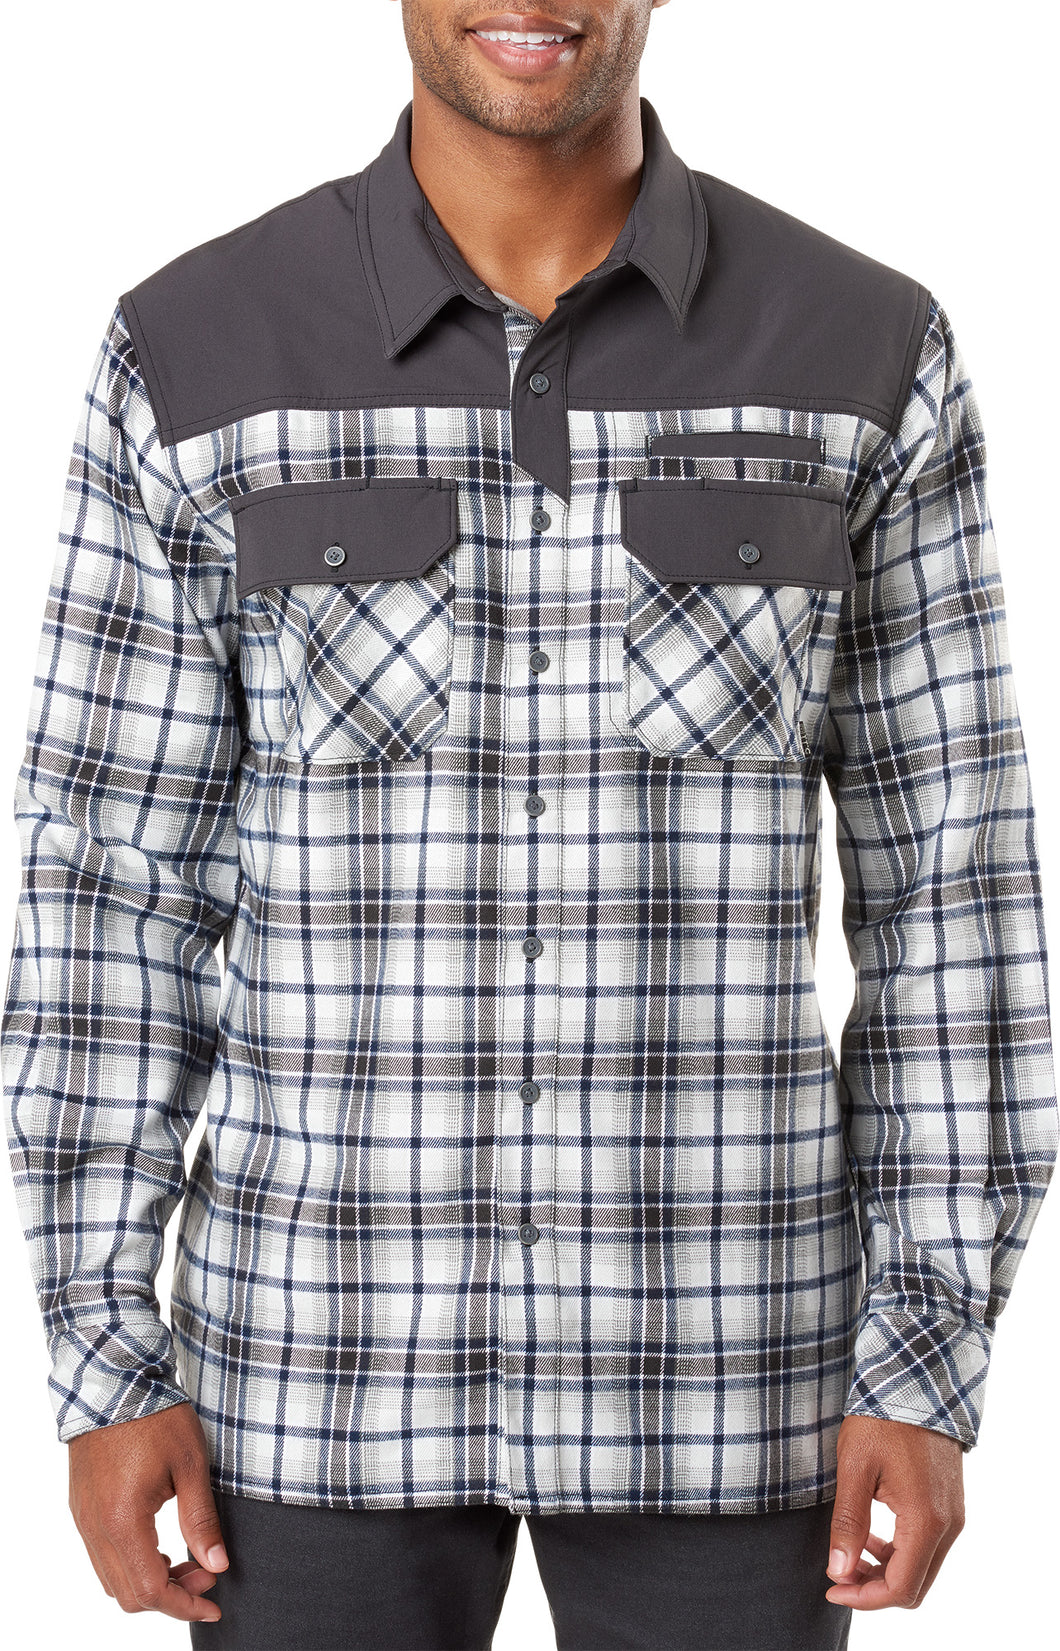 5.11 Tactical - Endeavor L/S Flannel Shirt - Battleship Plaid - 72468